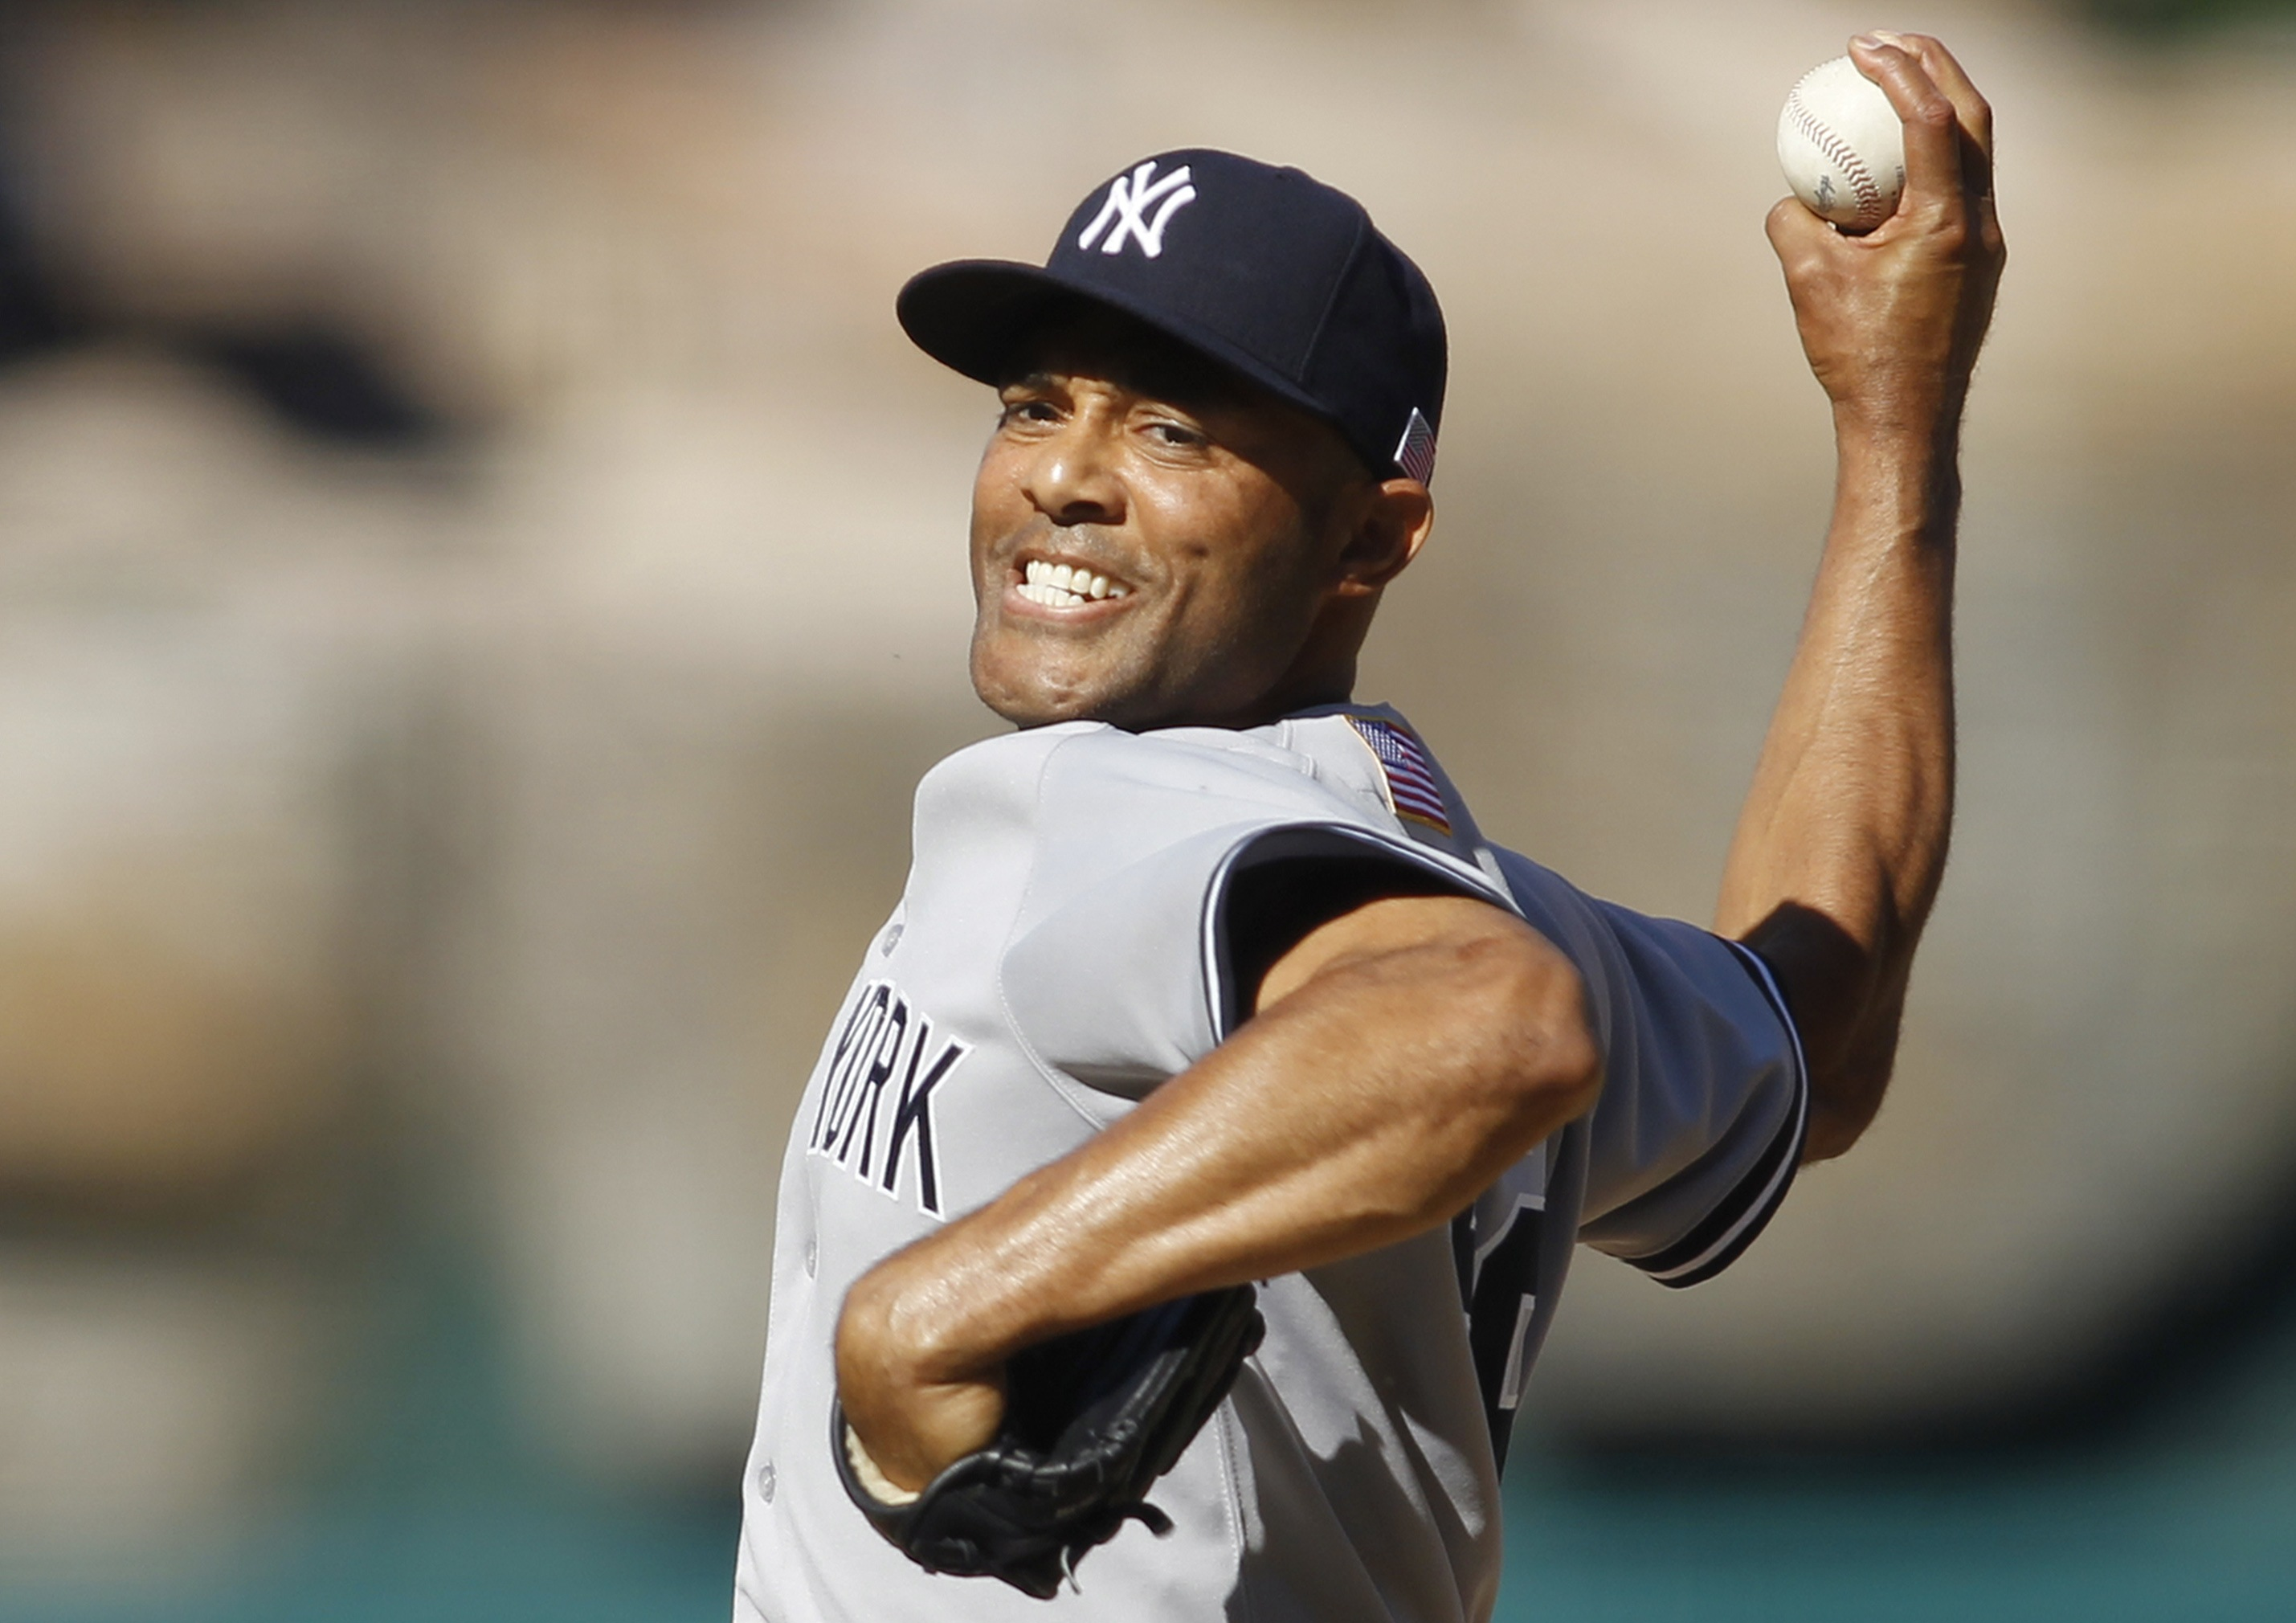 Mariano Rivera hd wallpaper free | Download HD Wallpapers